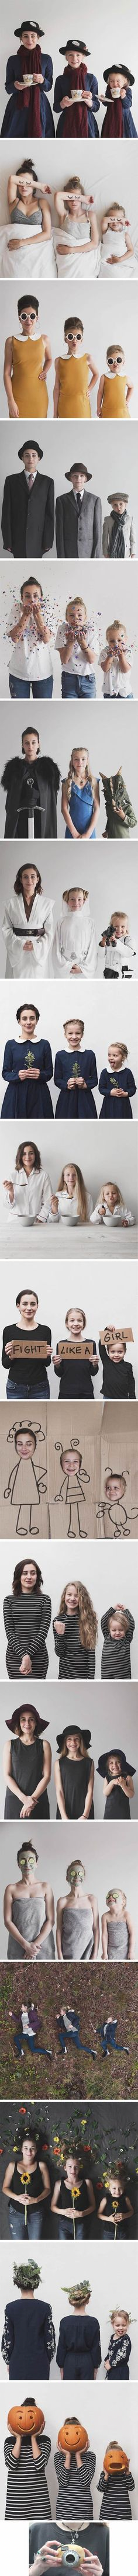 This mom having fun with her two daughters and photoshoots : MadeMeSmile